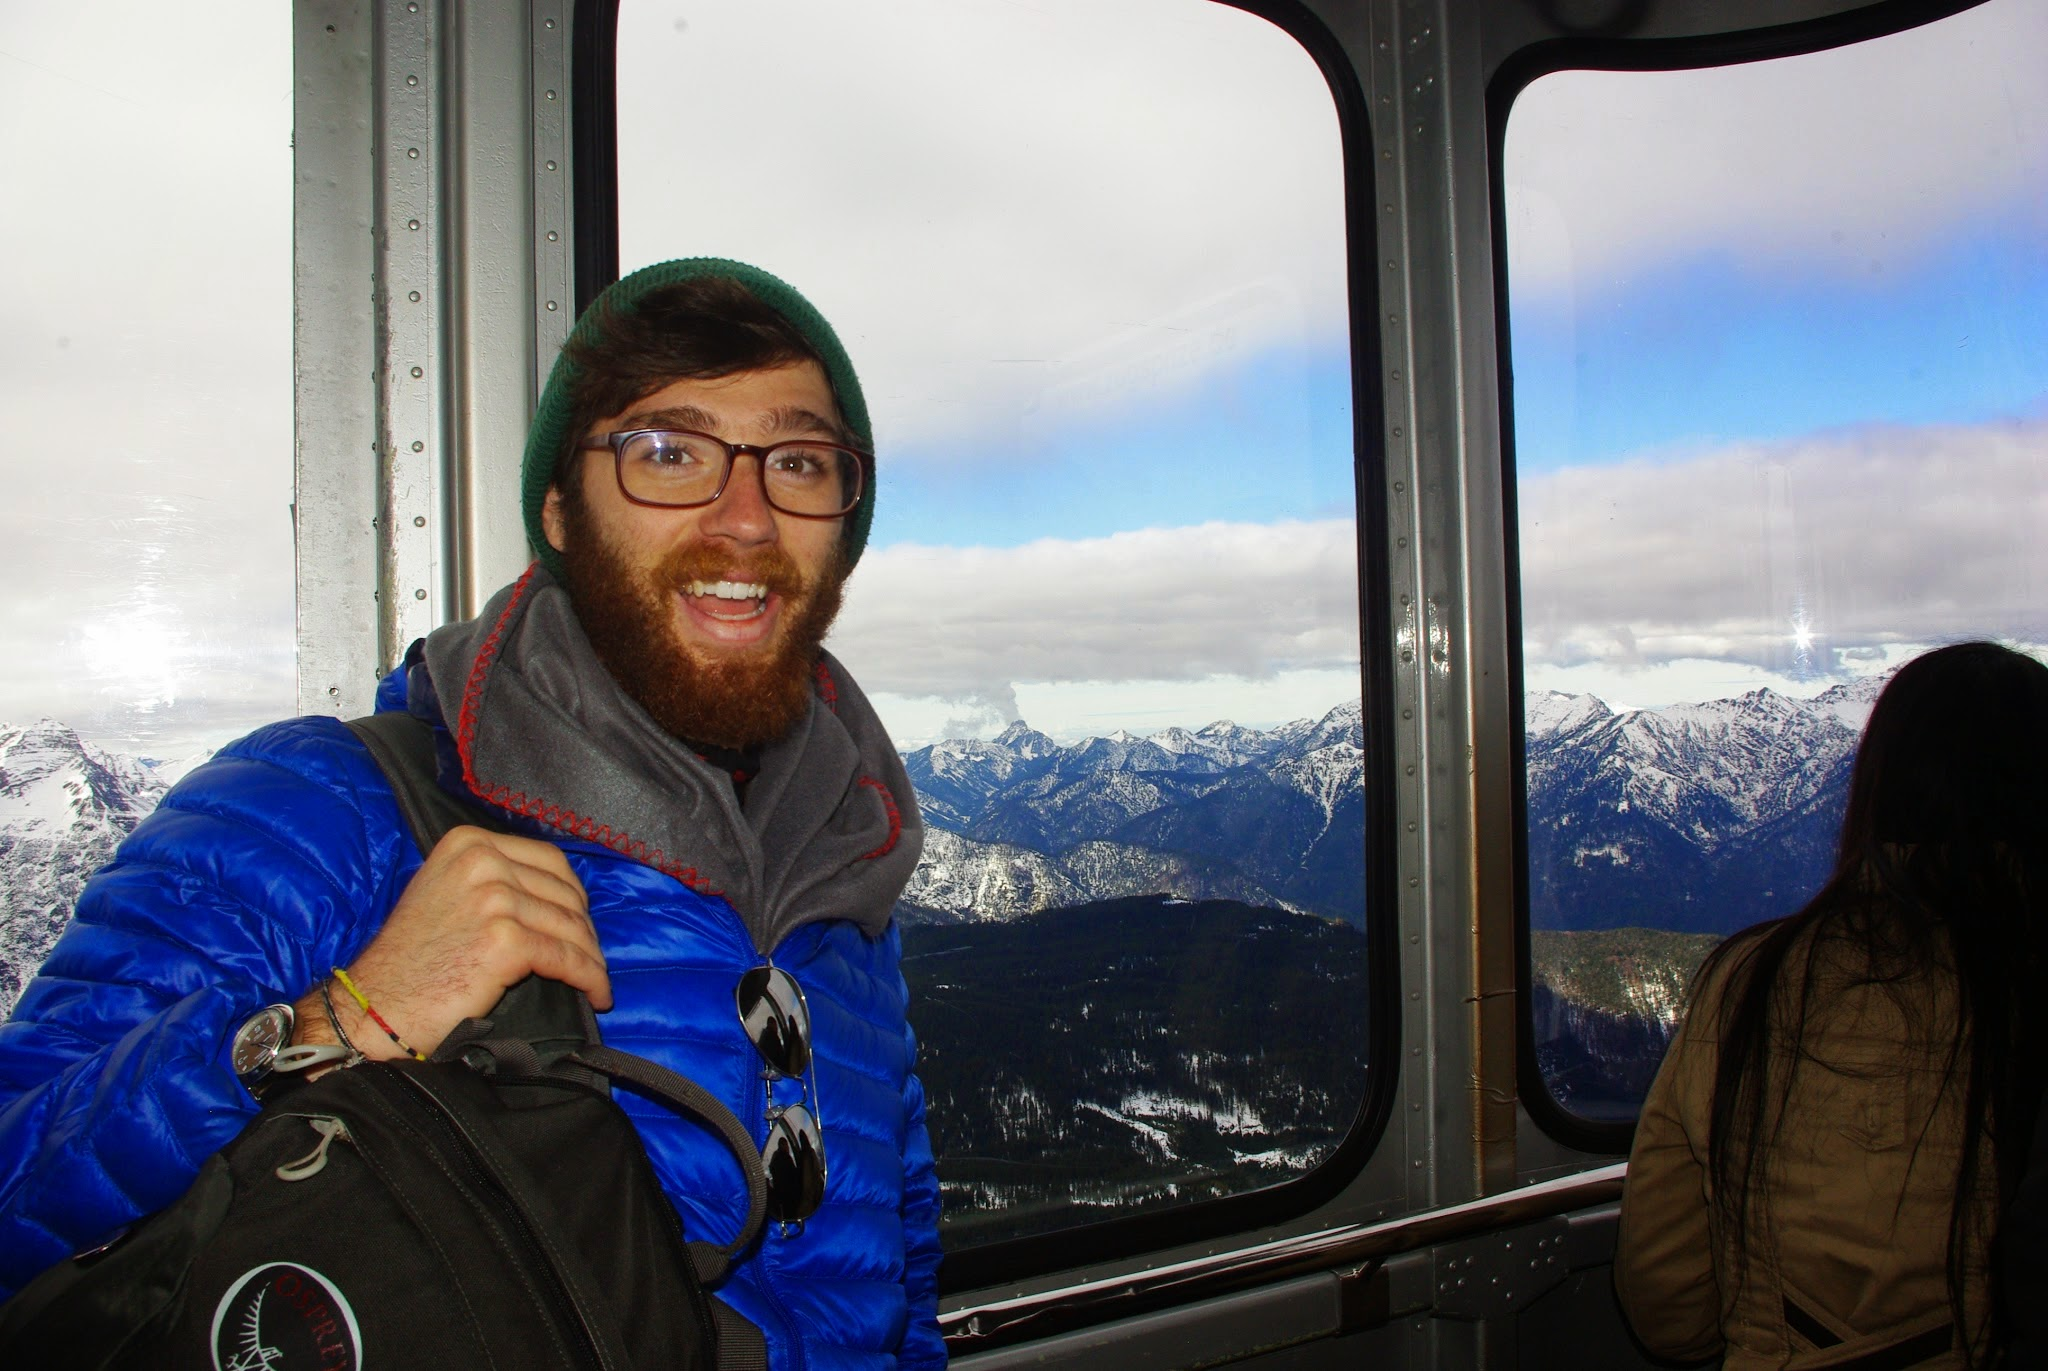 The cable car broke through the cloud cover and we finally got to see more of the Alps.